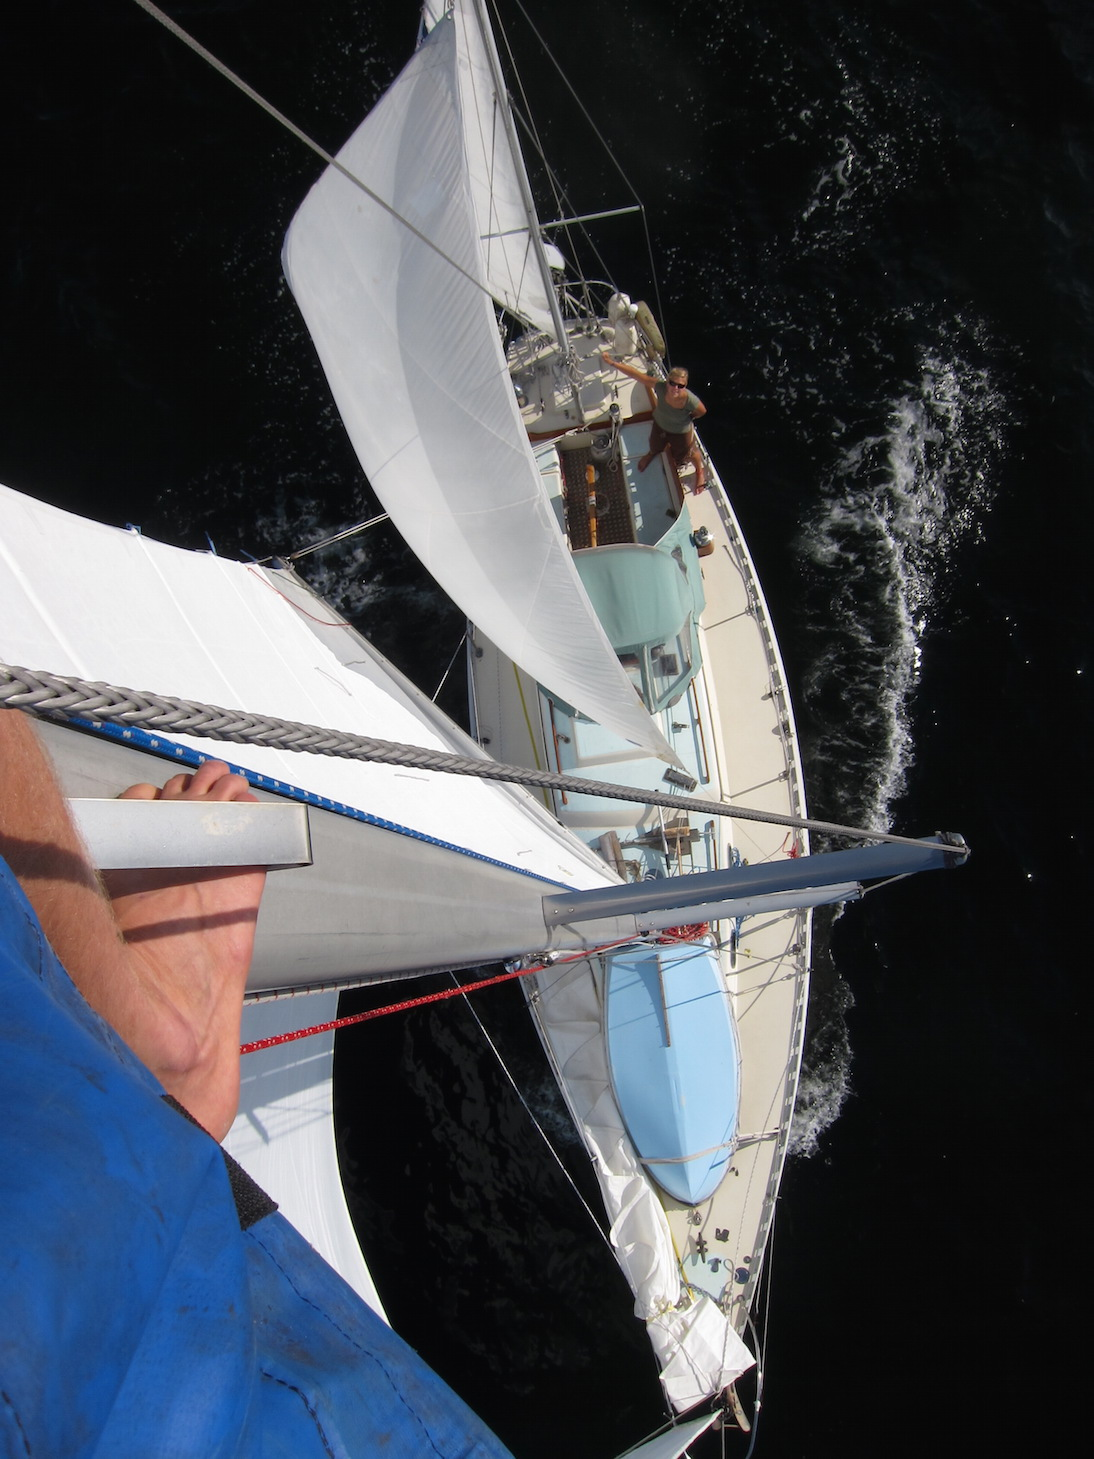 Arcturus under full sail in the Baltic, 2012. Scroll down for more photos at the end of the post.